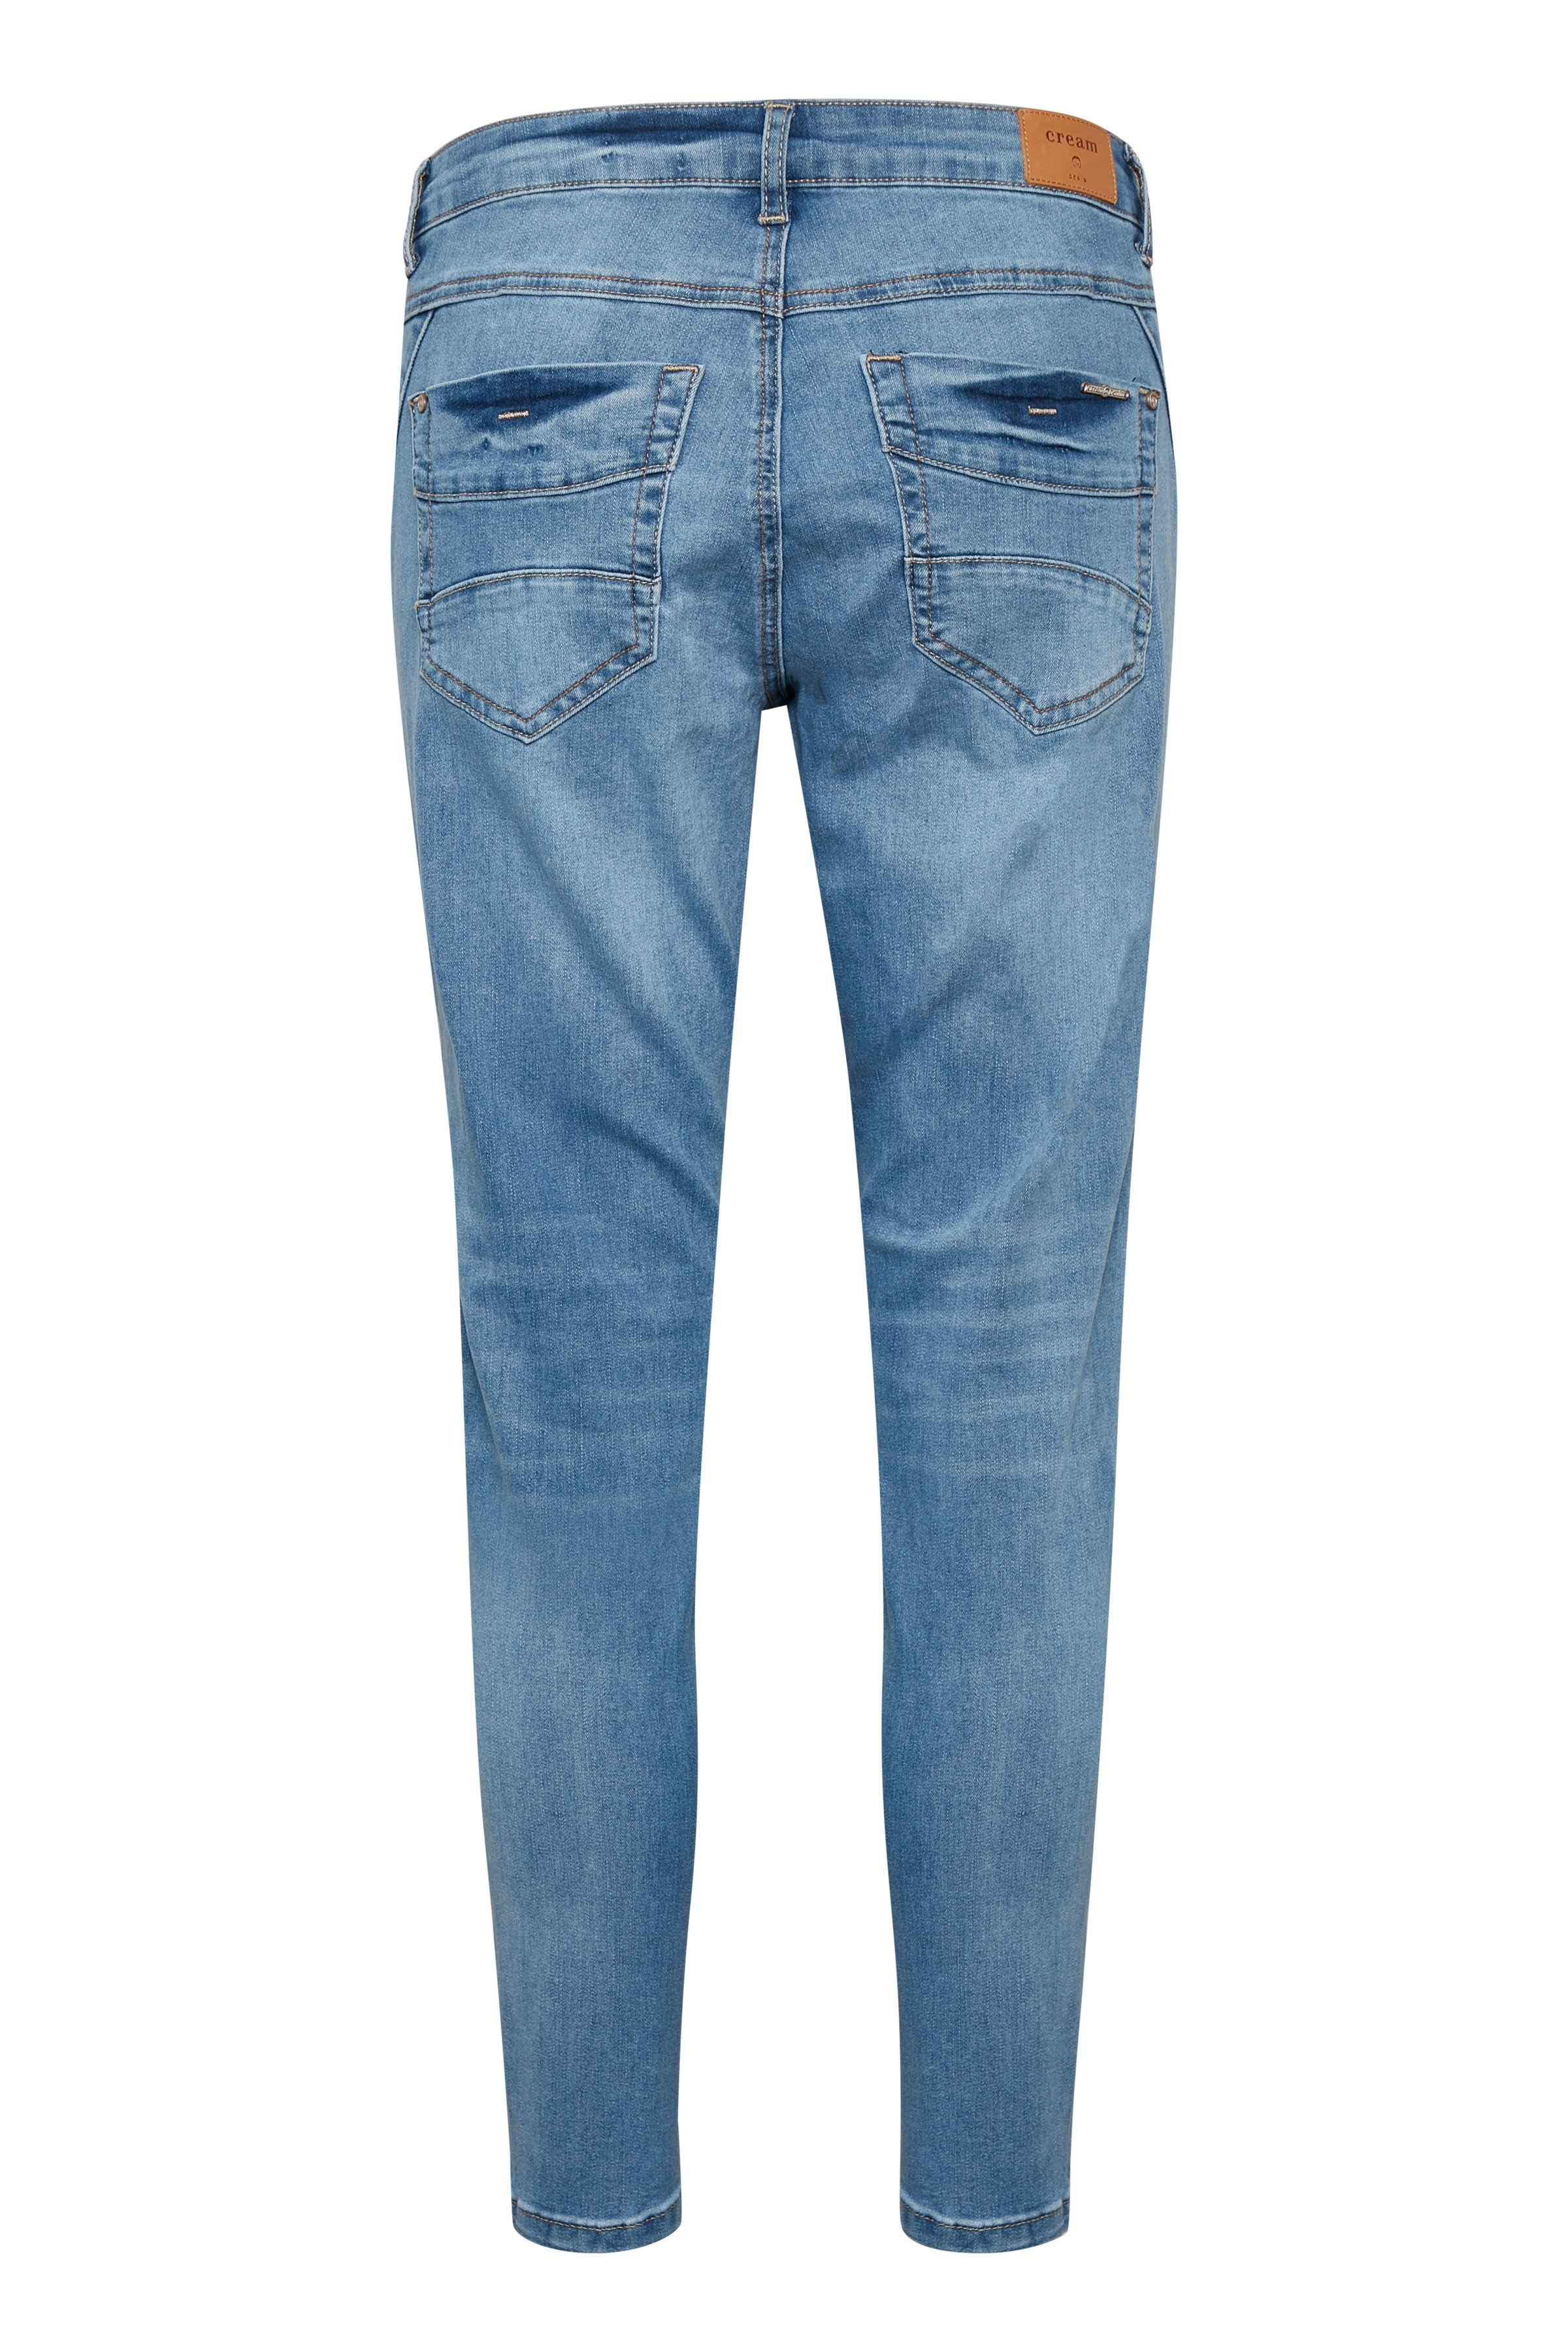 Cream 7/8 jeans »Crholly Jeans - Baiily Fit« online kopen op otto.nl